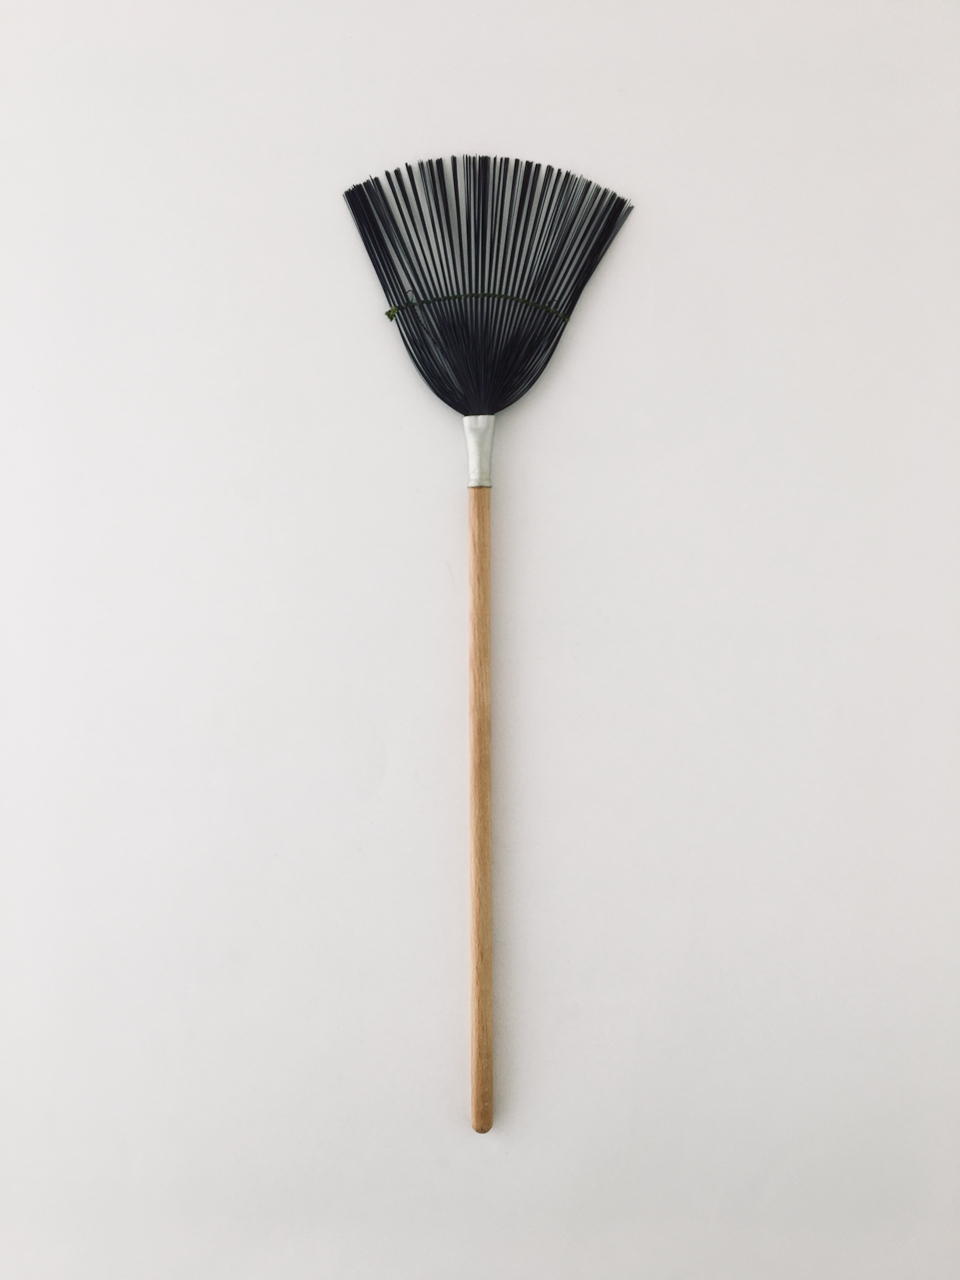 Vintage Fly Swatter ハエ叩き